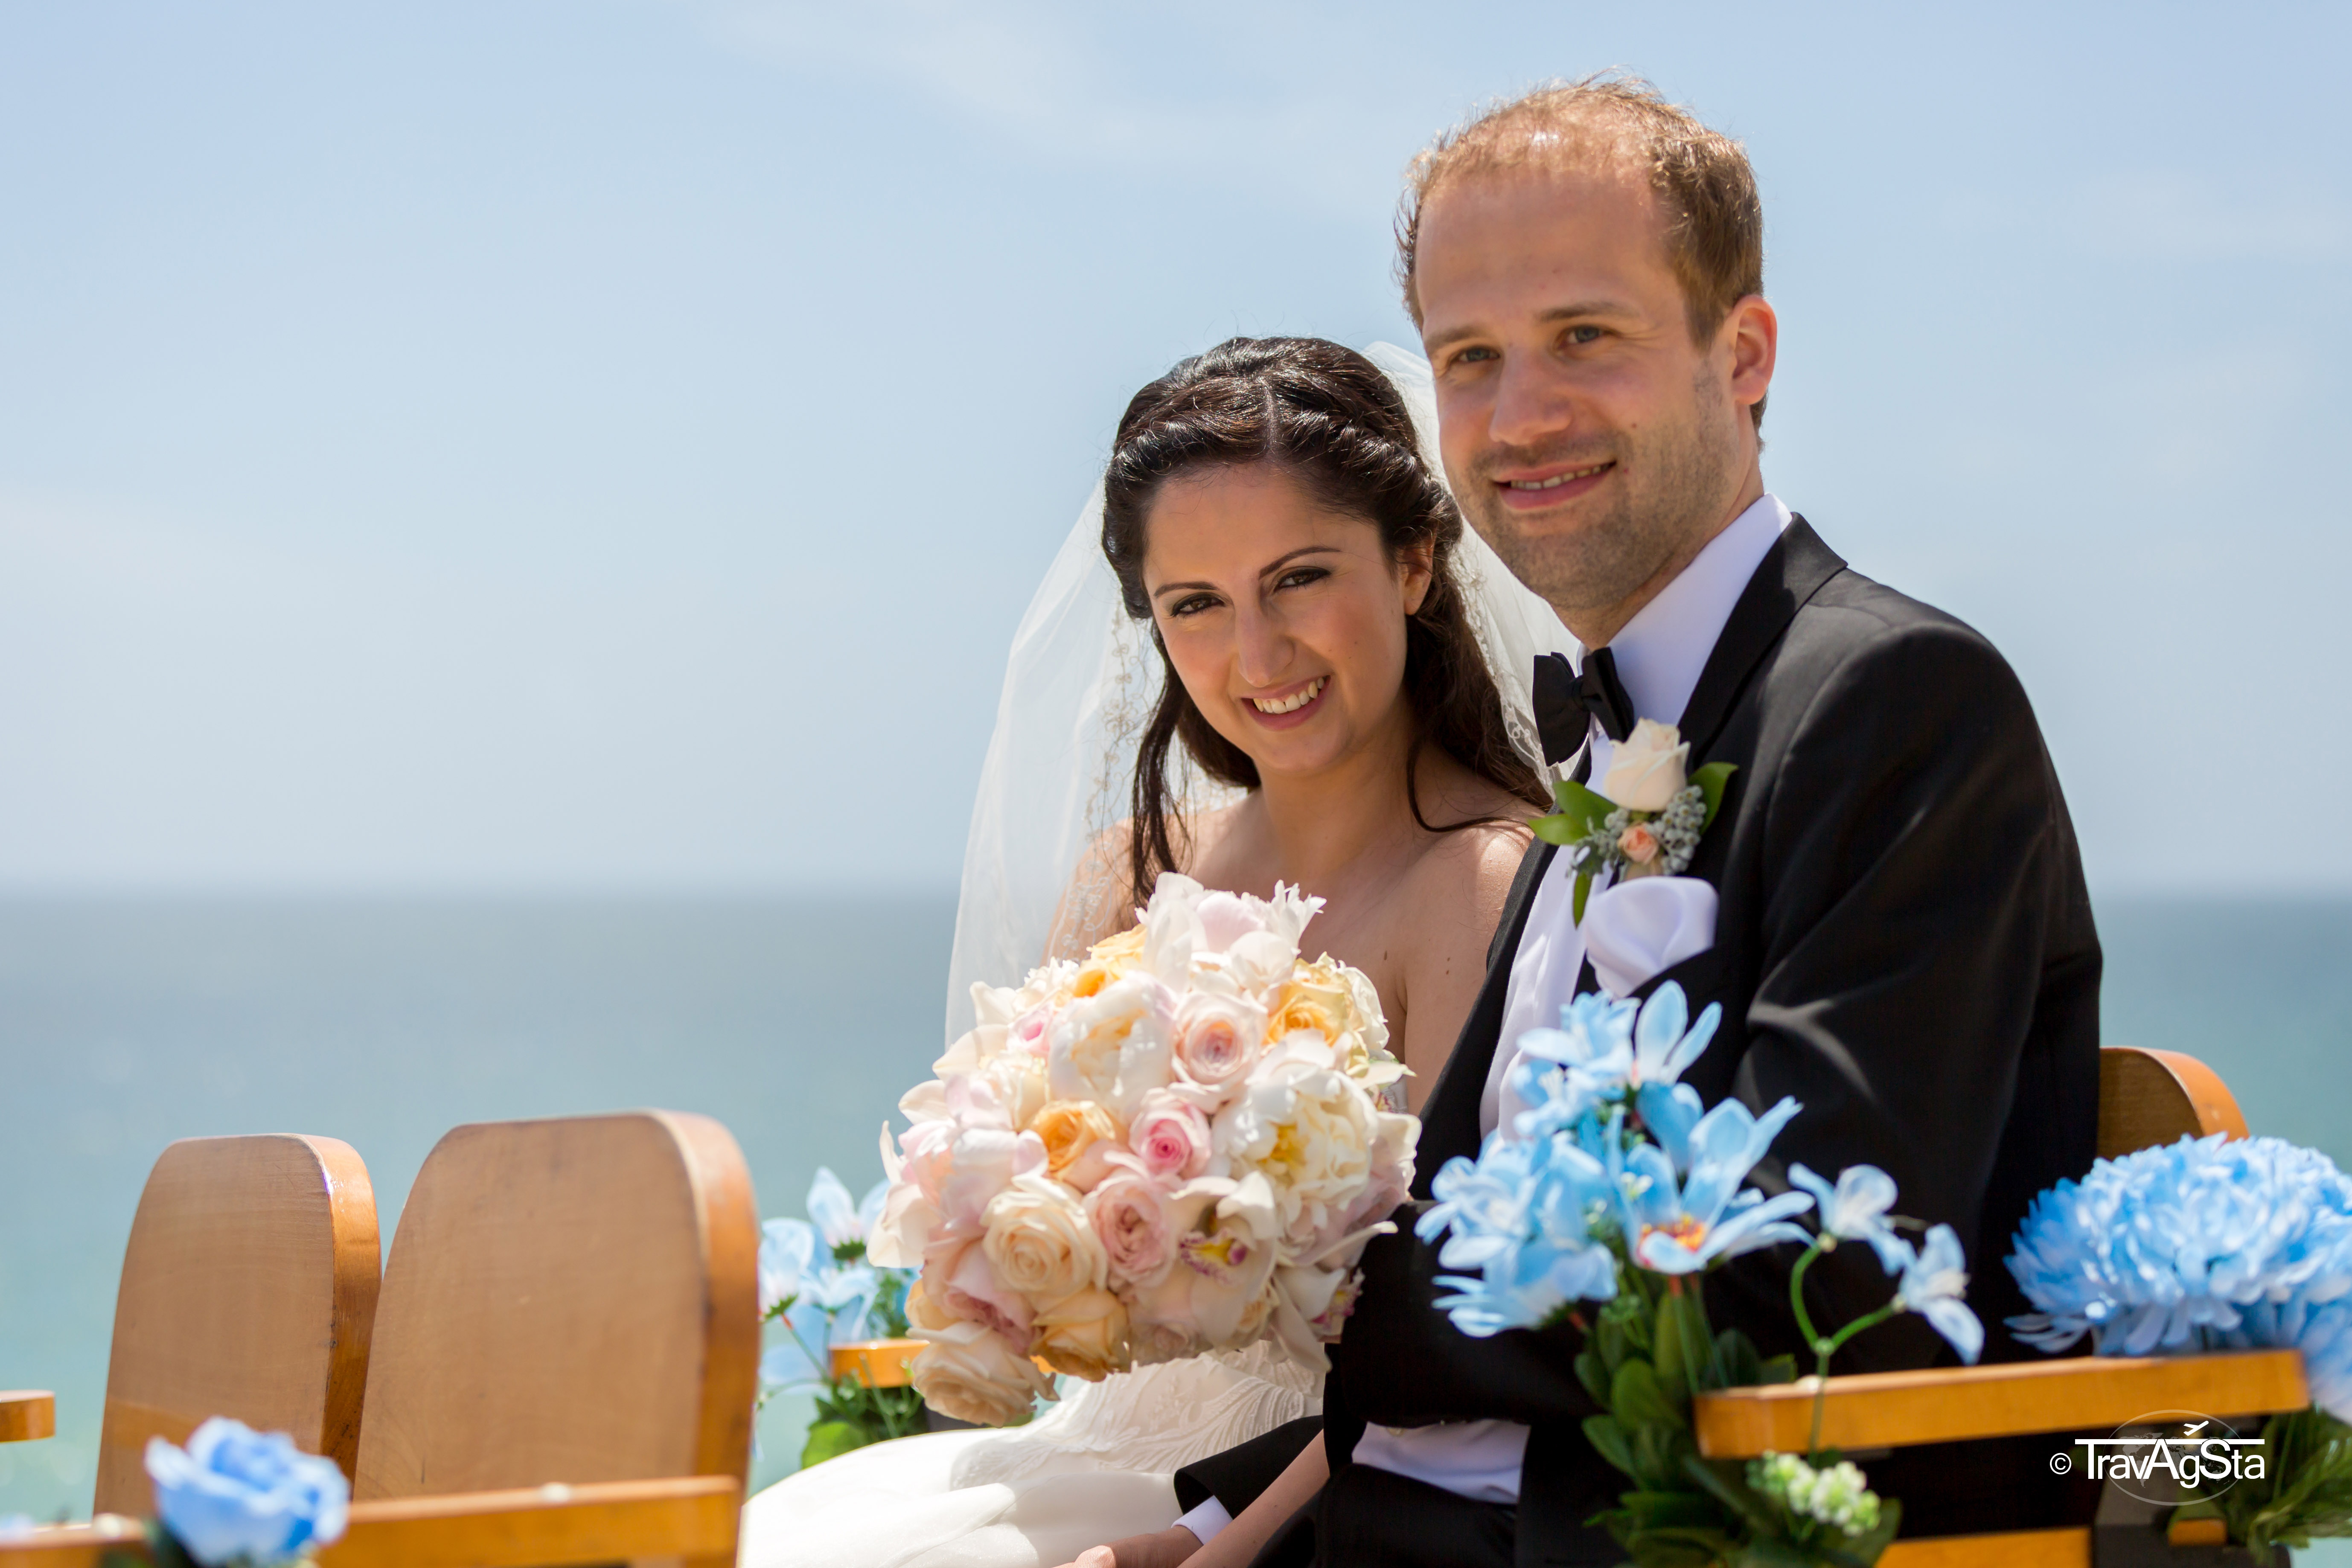 Heiraten in lagos portugal